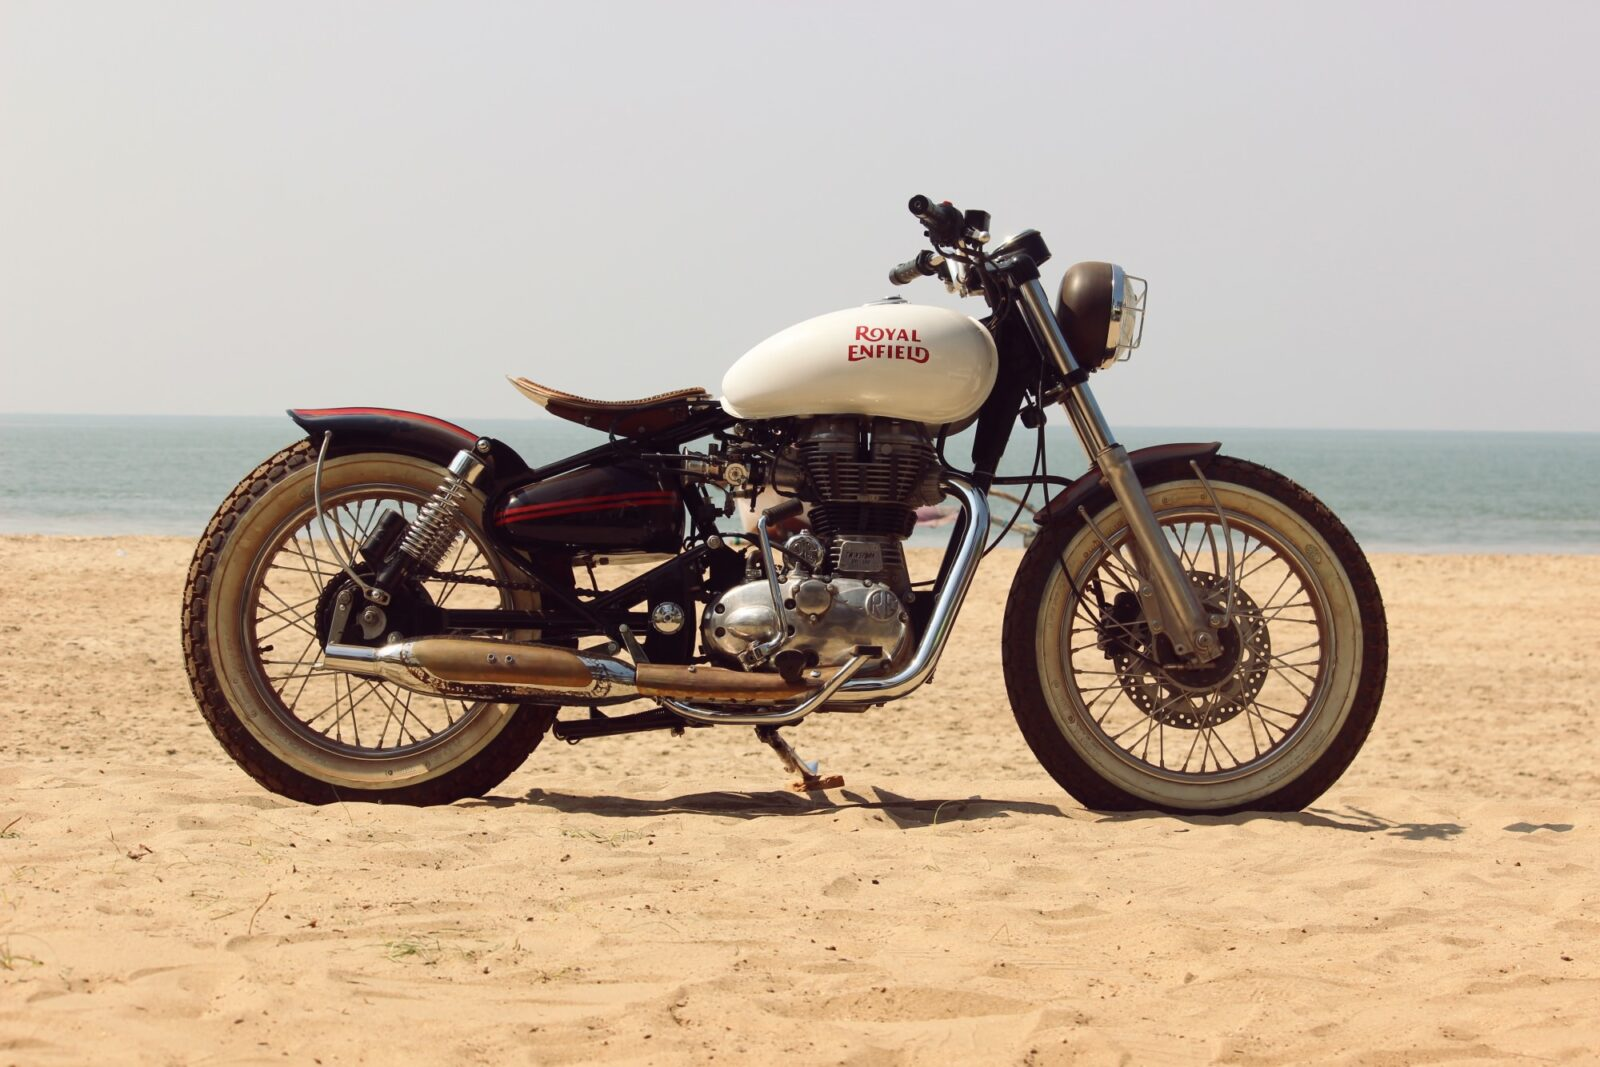 royal enfield motorcycle custom 13 1600x1067 - Royal Enfield Beach Tracker